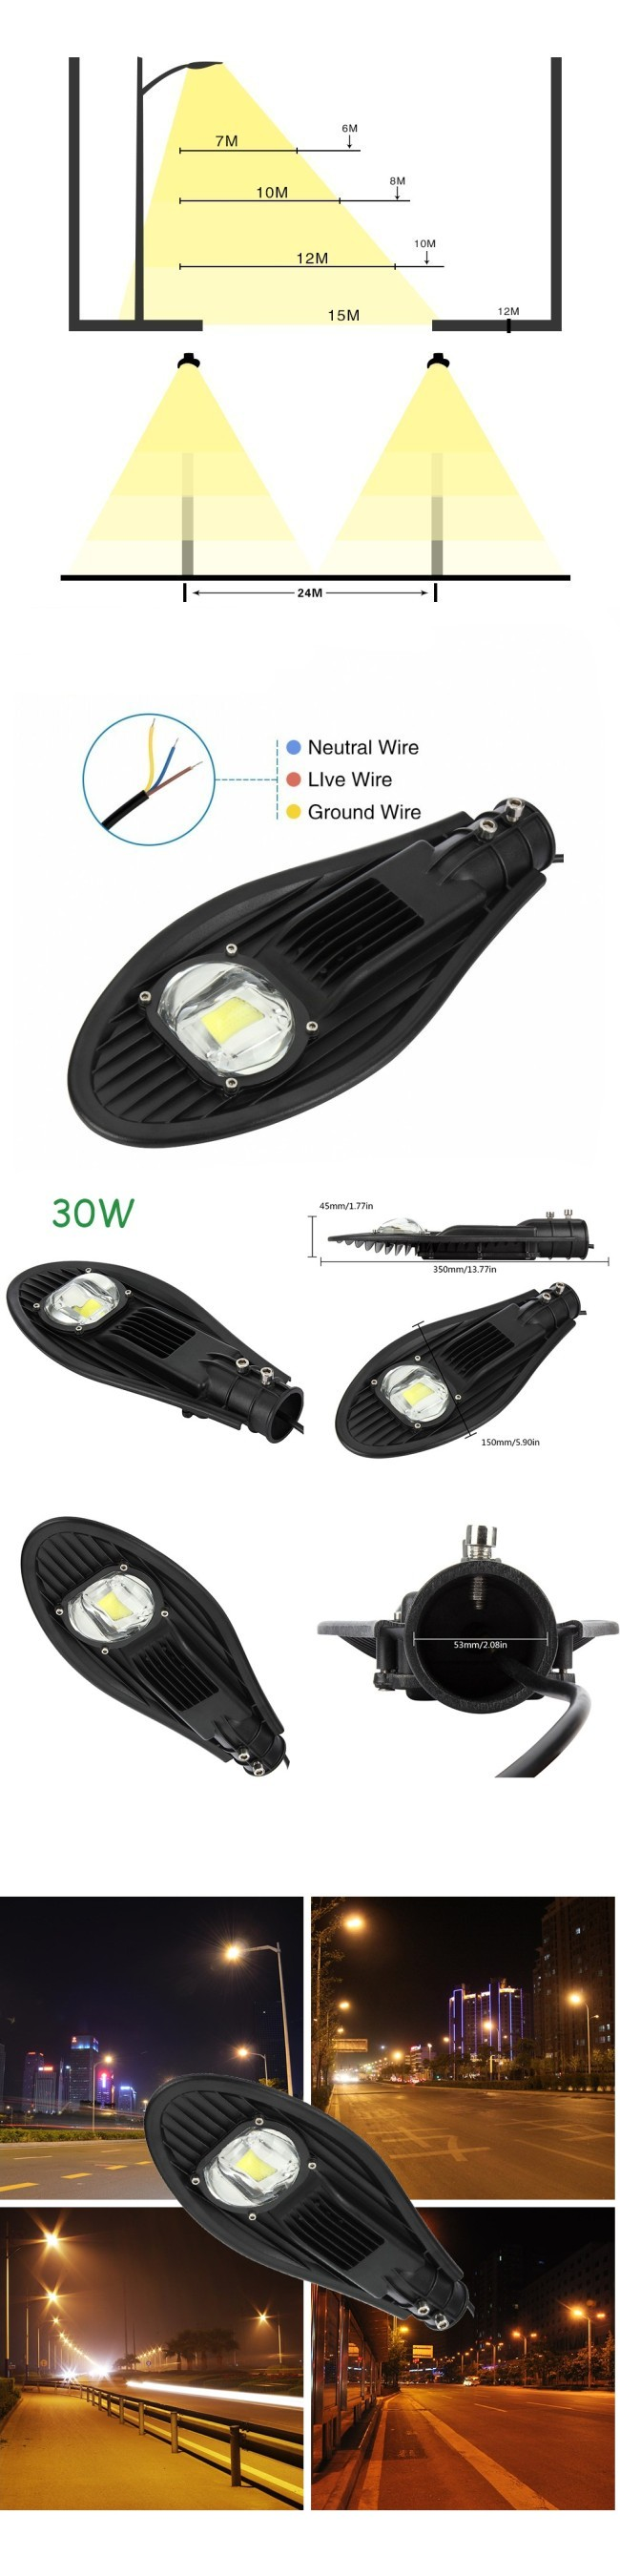 Outdoor 40W Solar LED Lamp 12V 24V Public LED Street Light